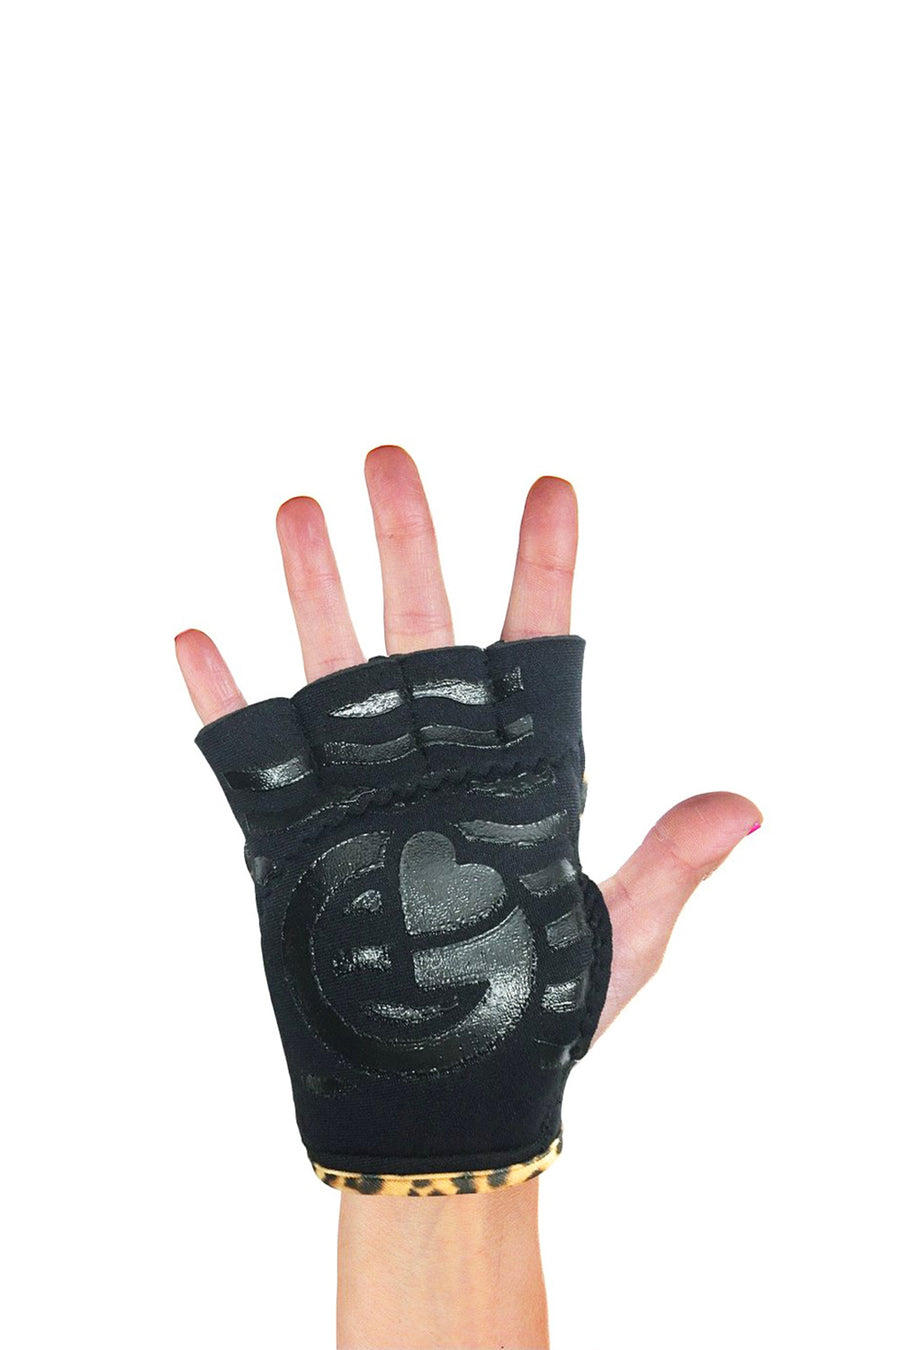 GELOMETRICS GEL STUDIO GLOVES